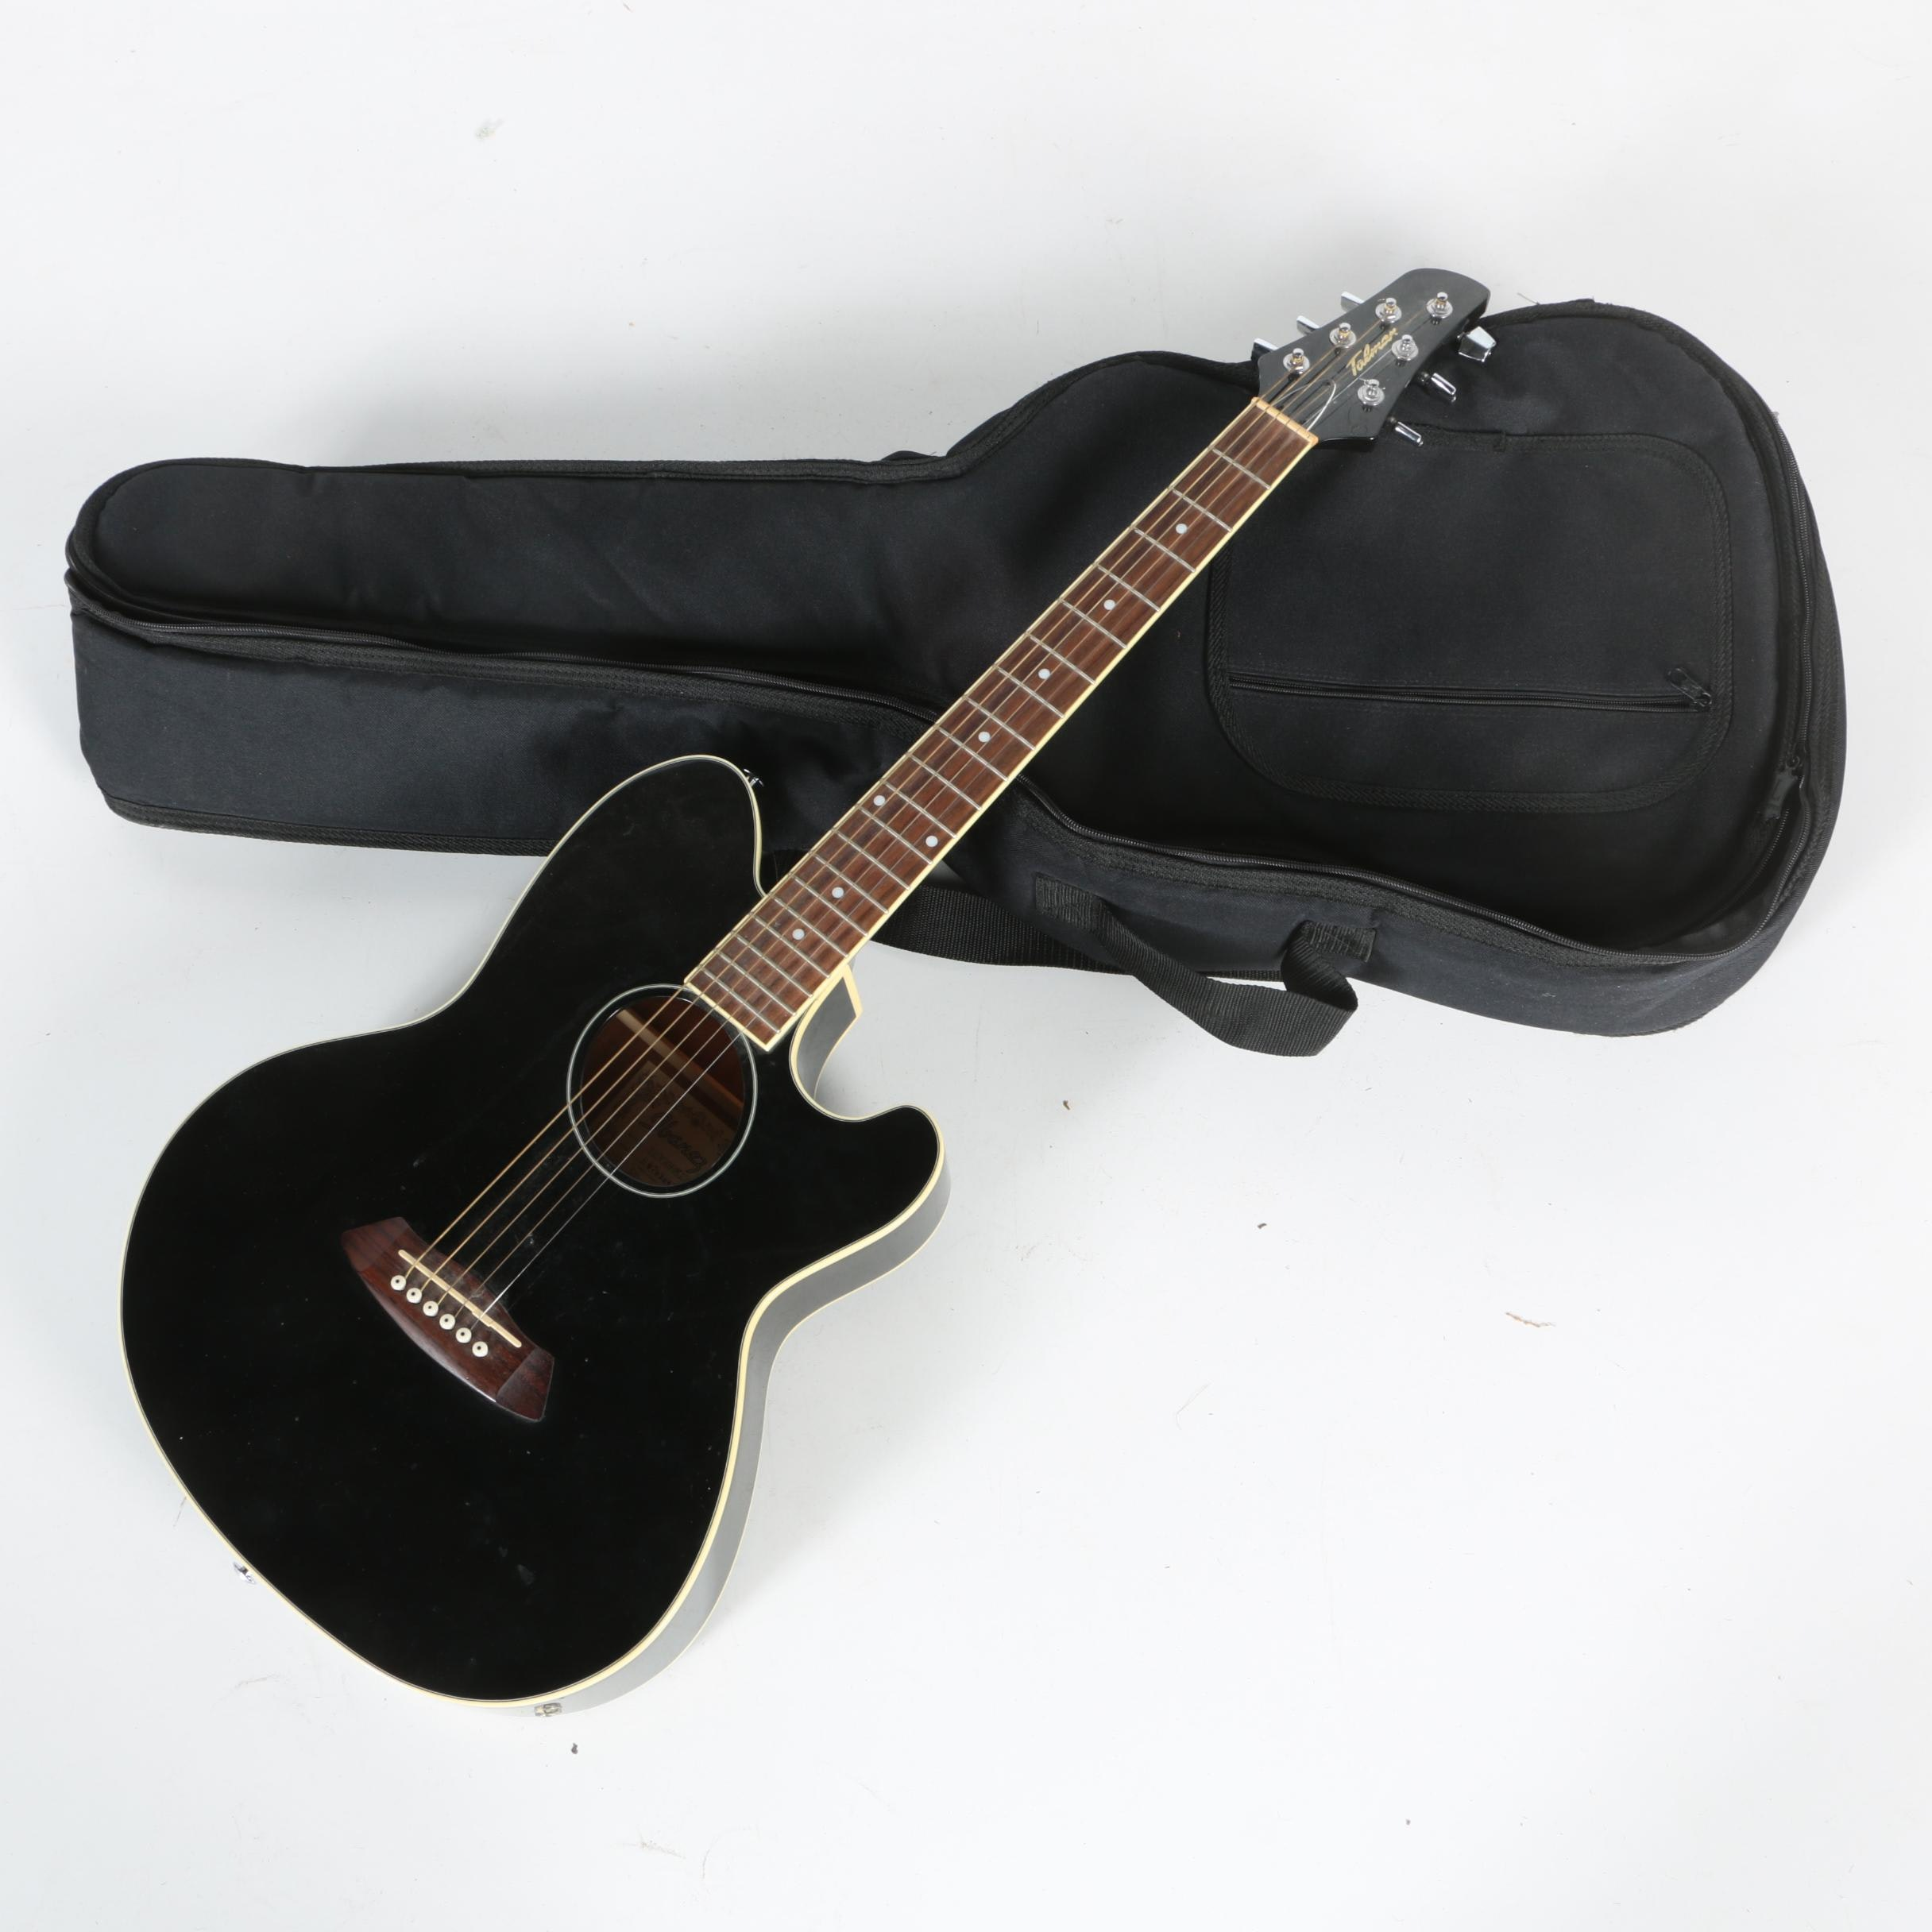 Ibanez Talman Acoustic Electric Guitar And Case Ebth